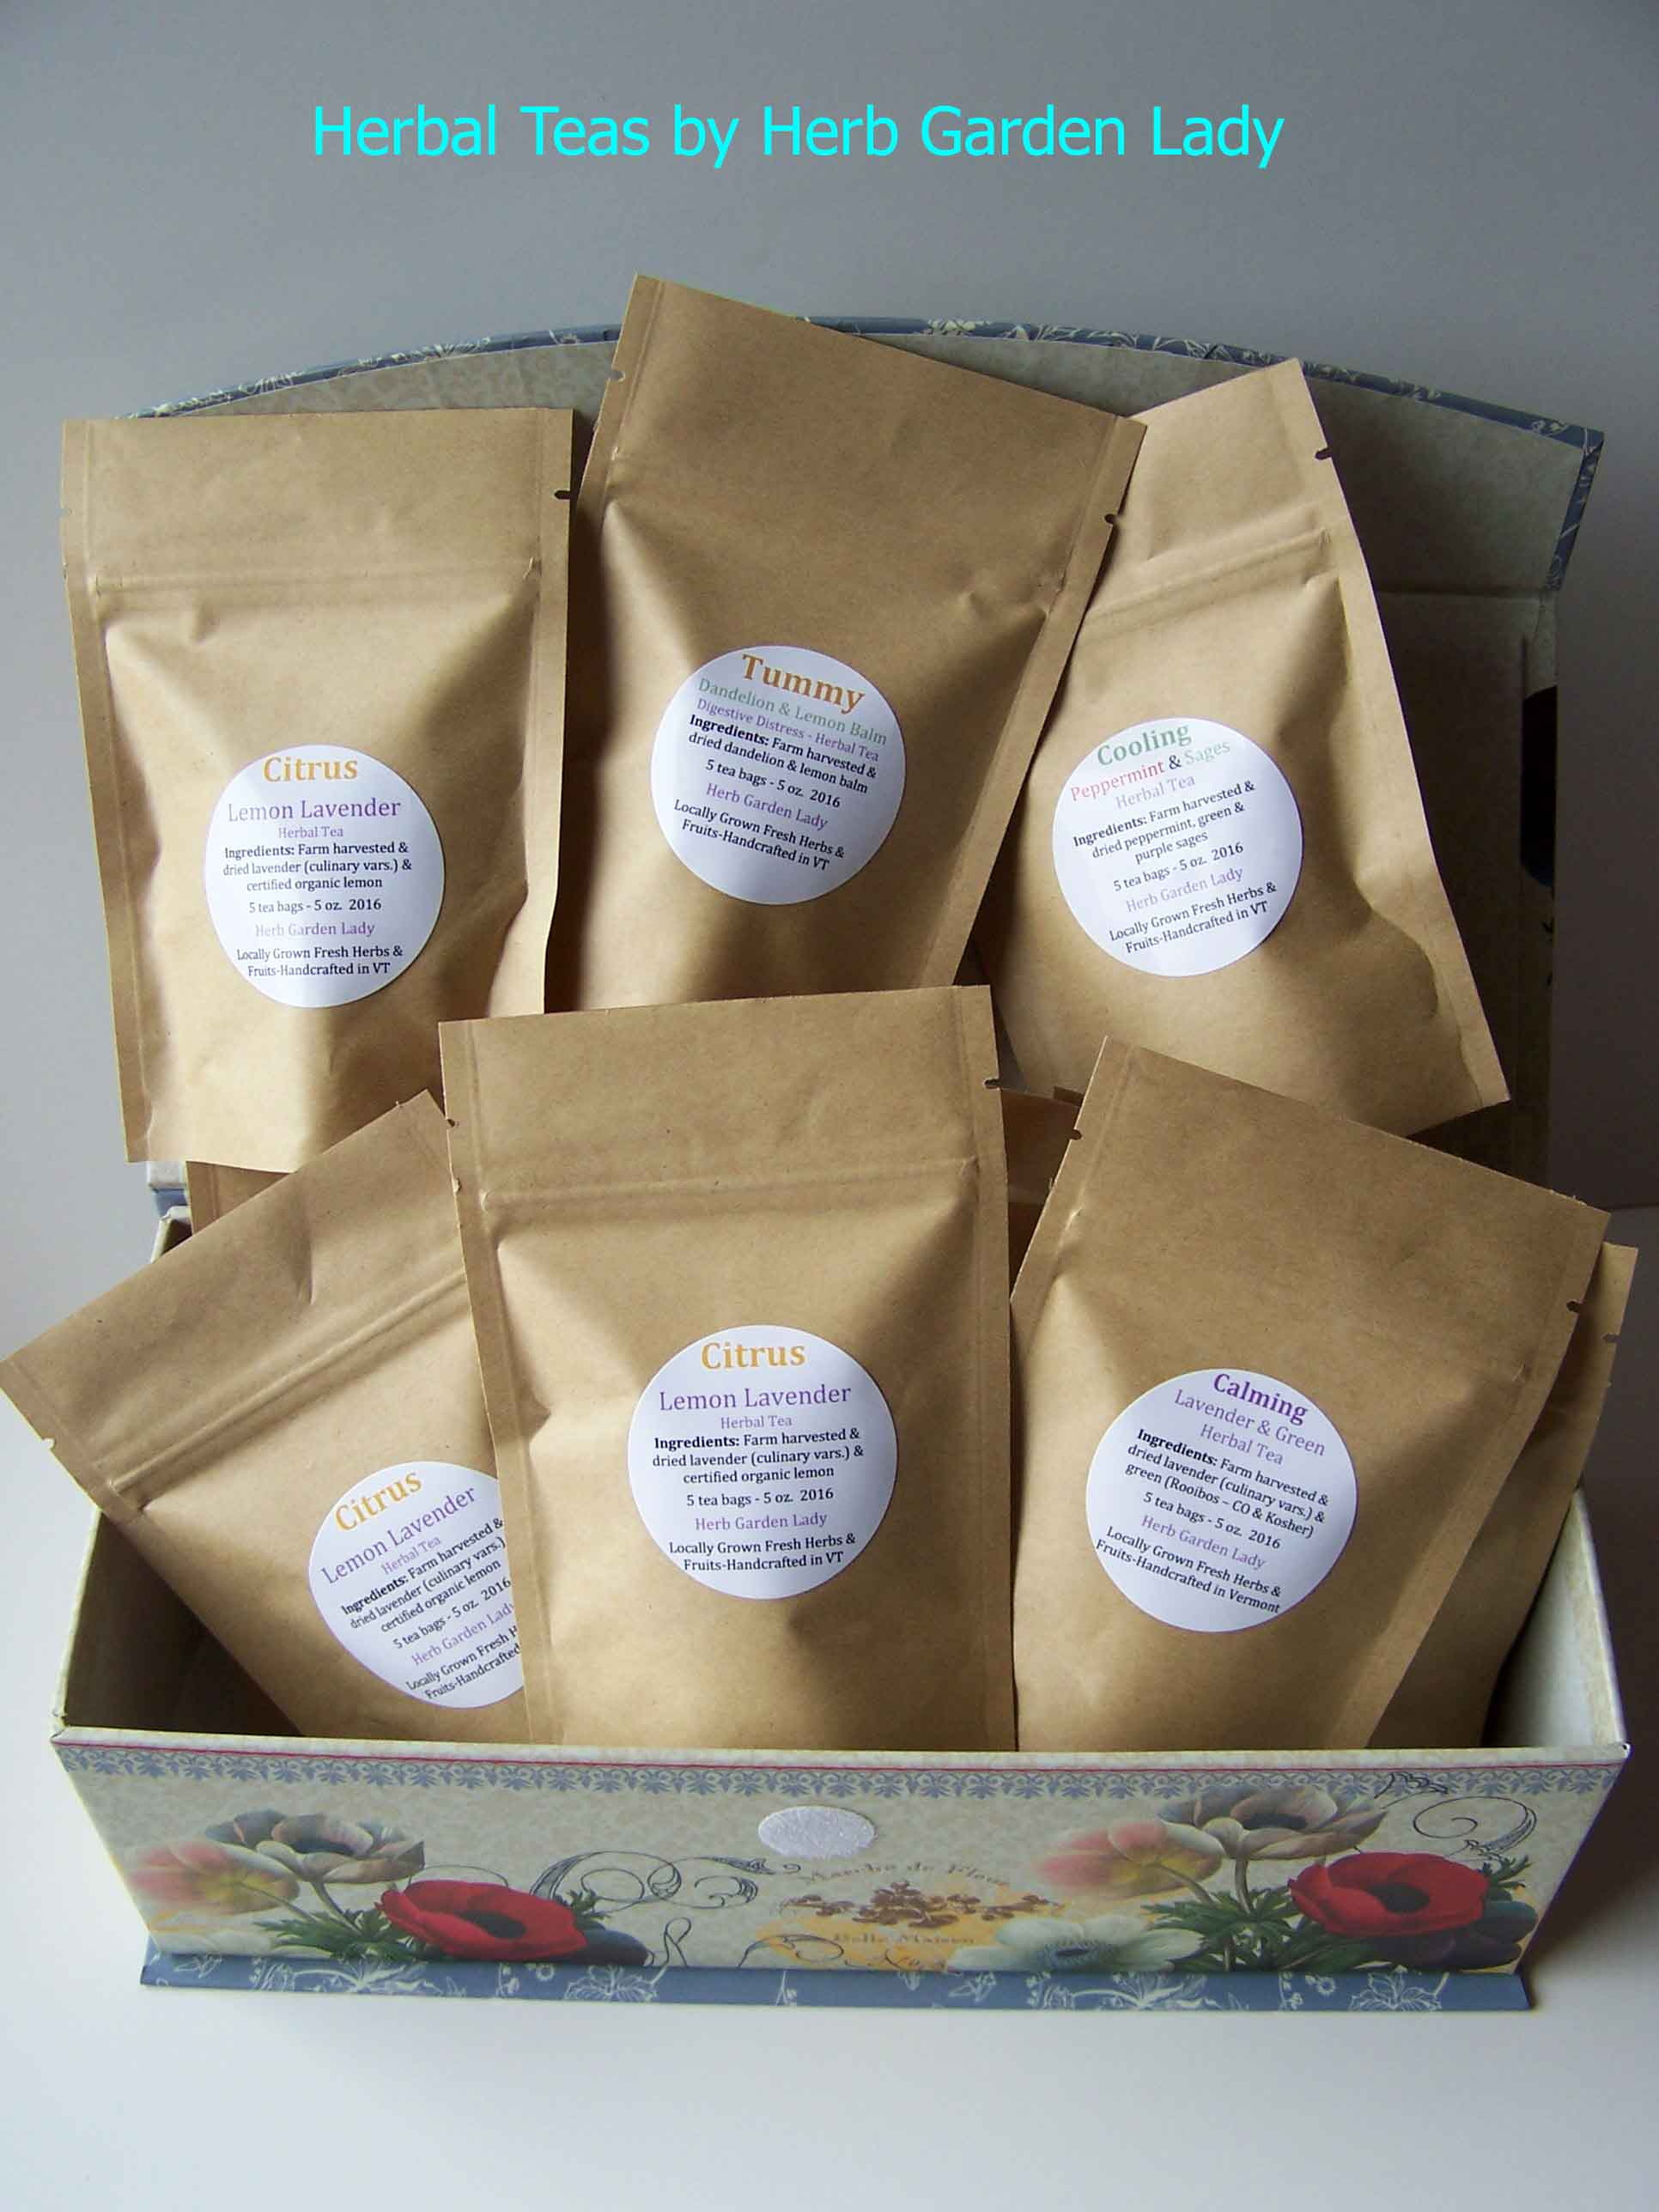 Herbal teas by Herb Garden Lady